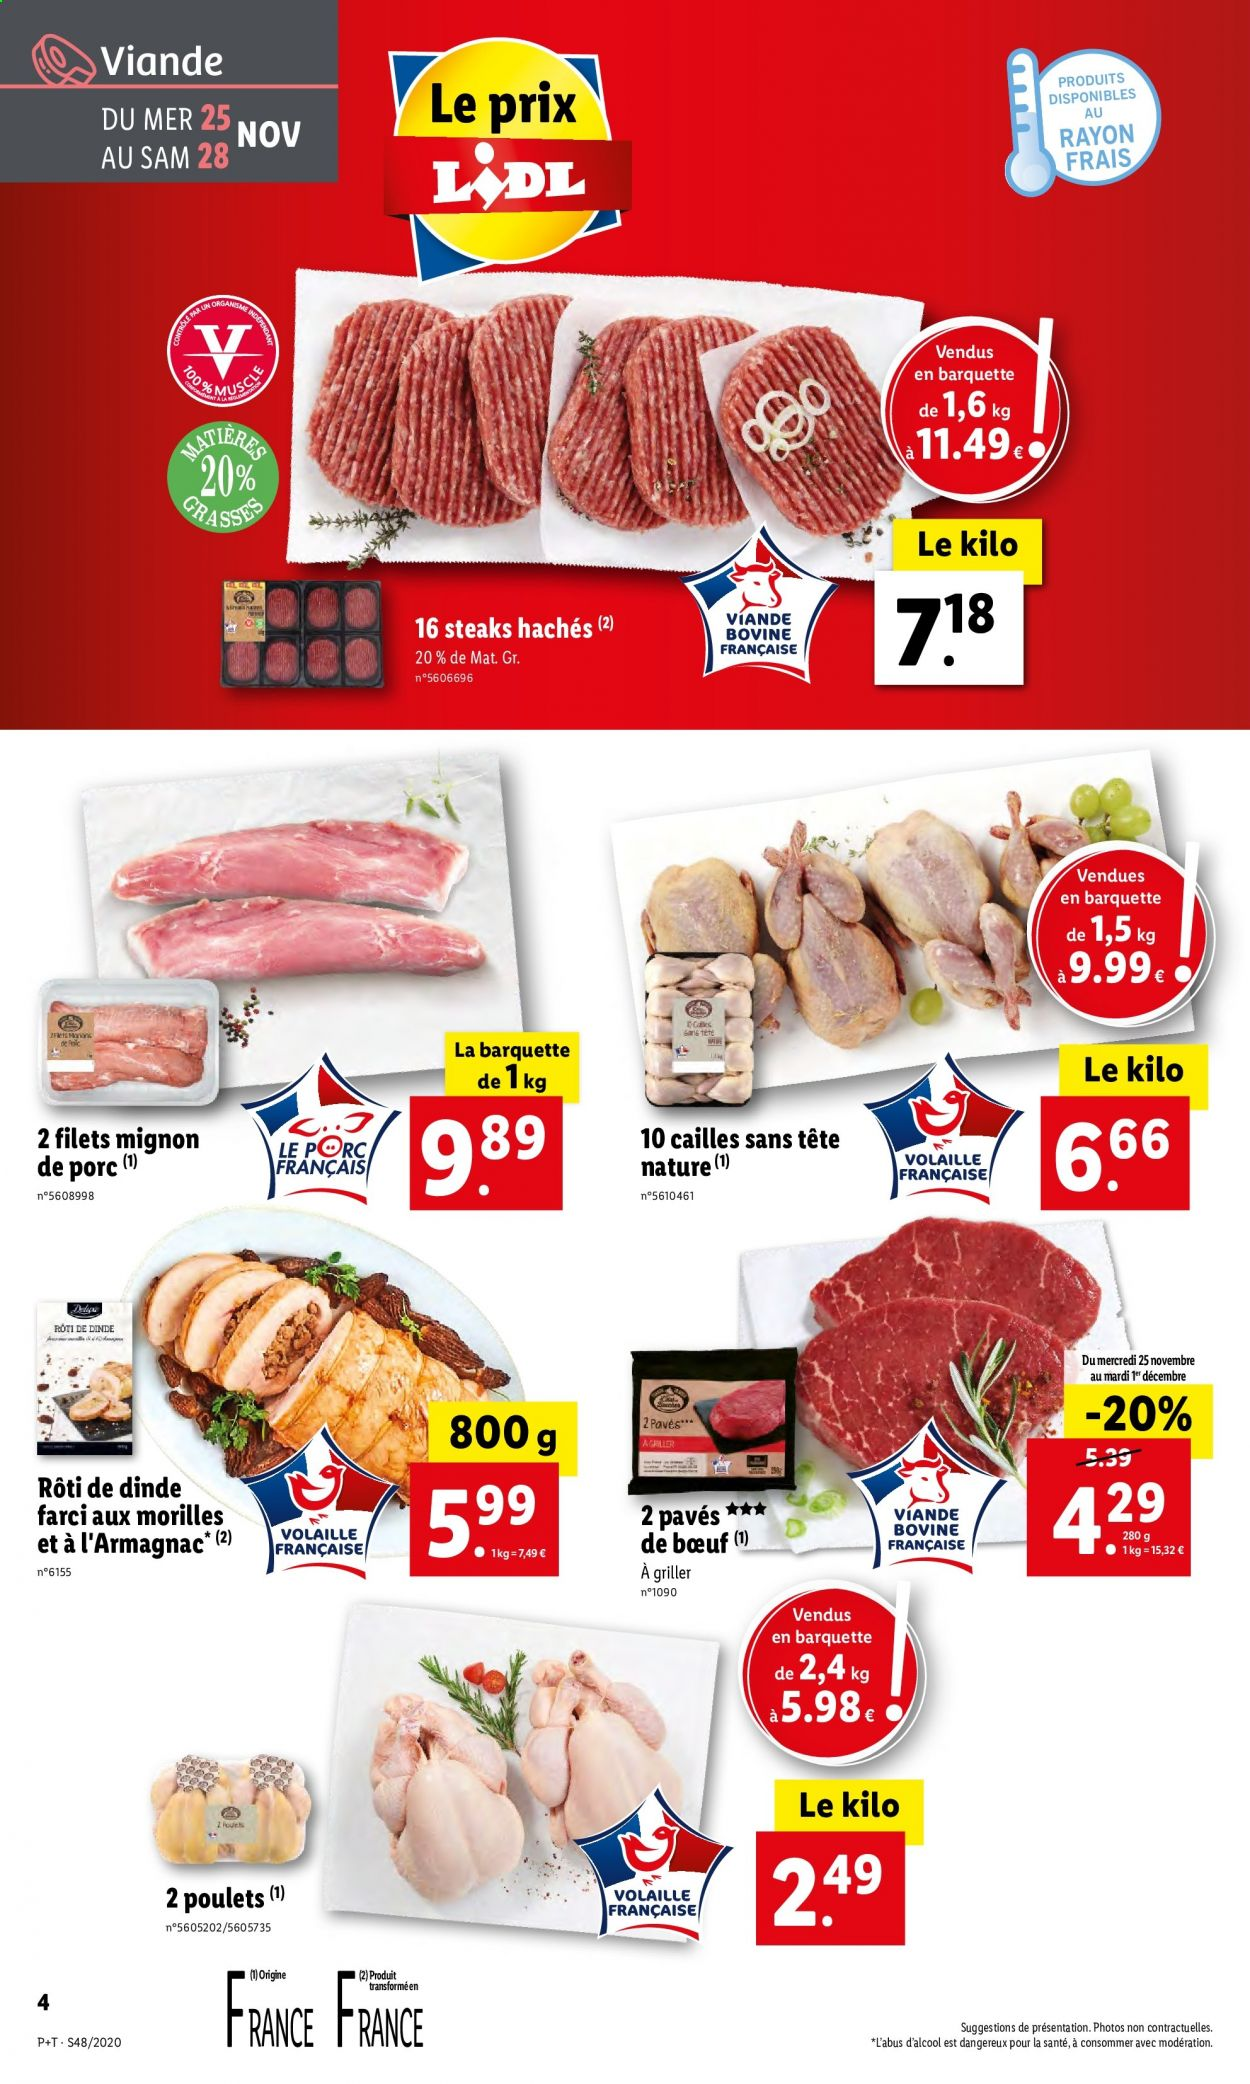 Catalogue Lidl - 25.11.2020 - 01.12.2020. Page 4.